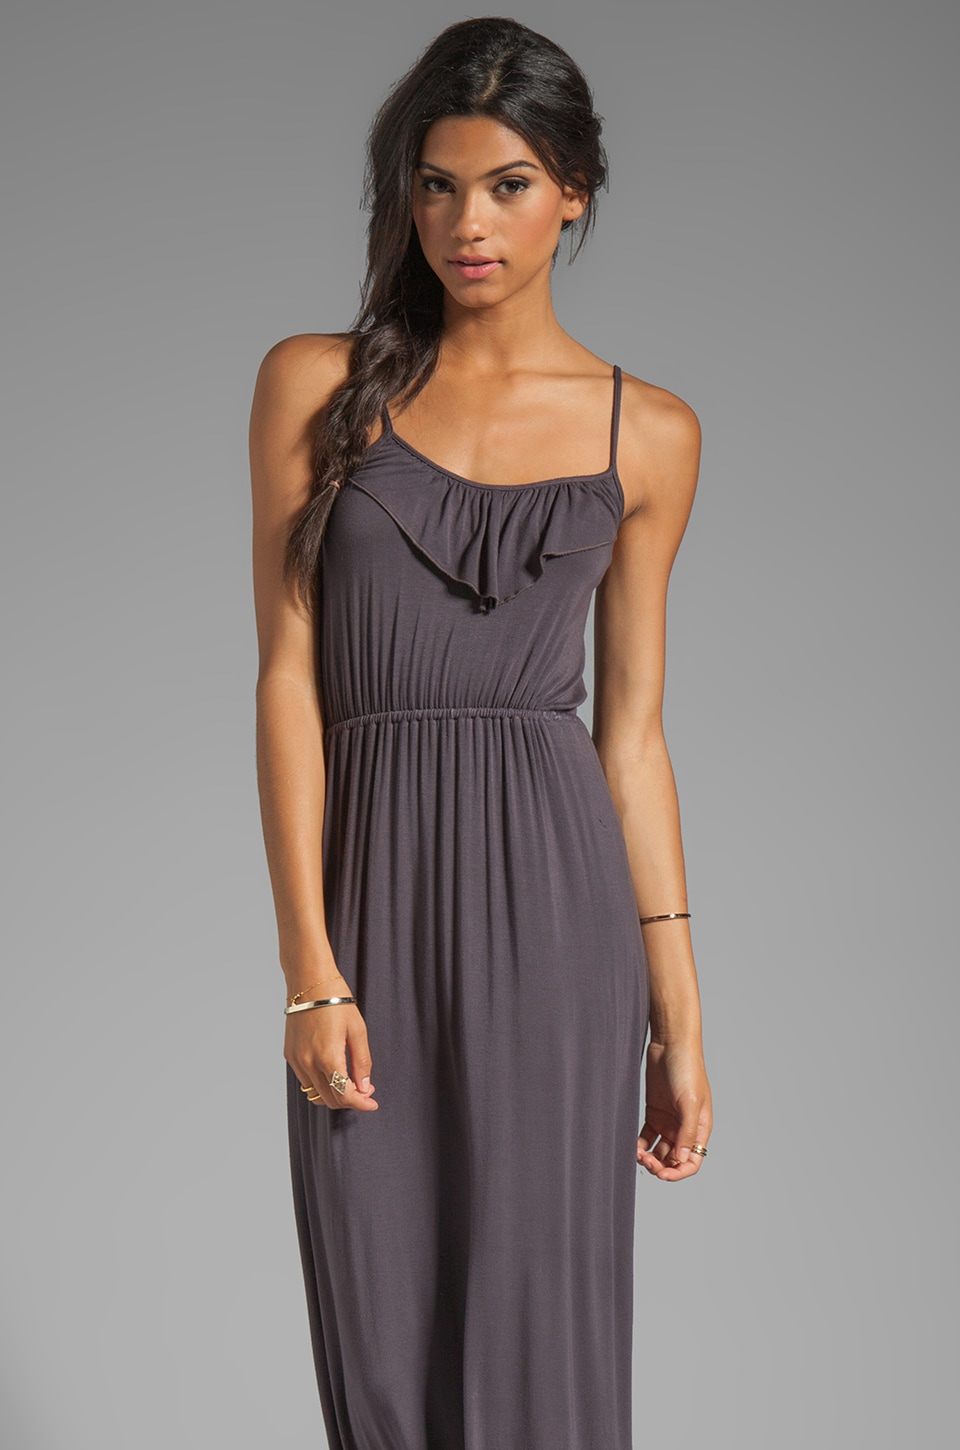 Bobi Jersey Ruffle Dress in Empire